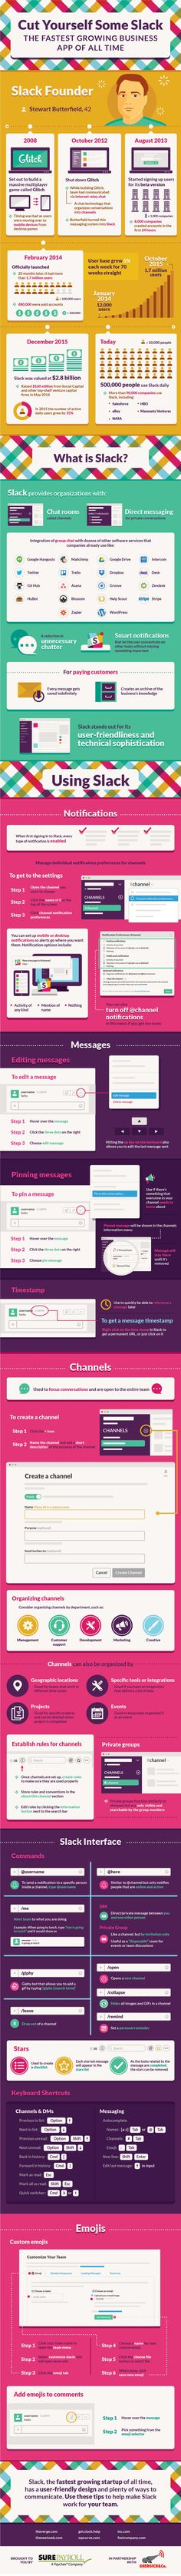 Cut Yourself Some Slack: The Fastest Growing Business App of All Time #Infographic #Apps #Business